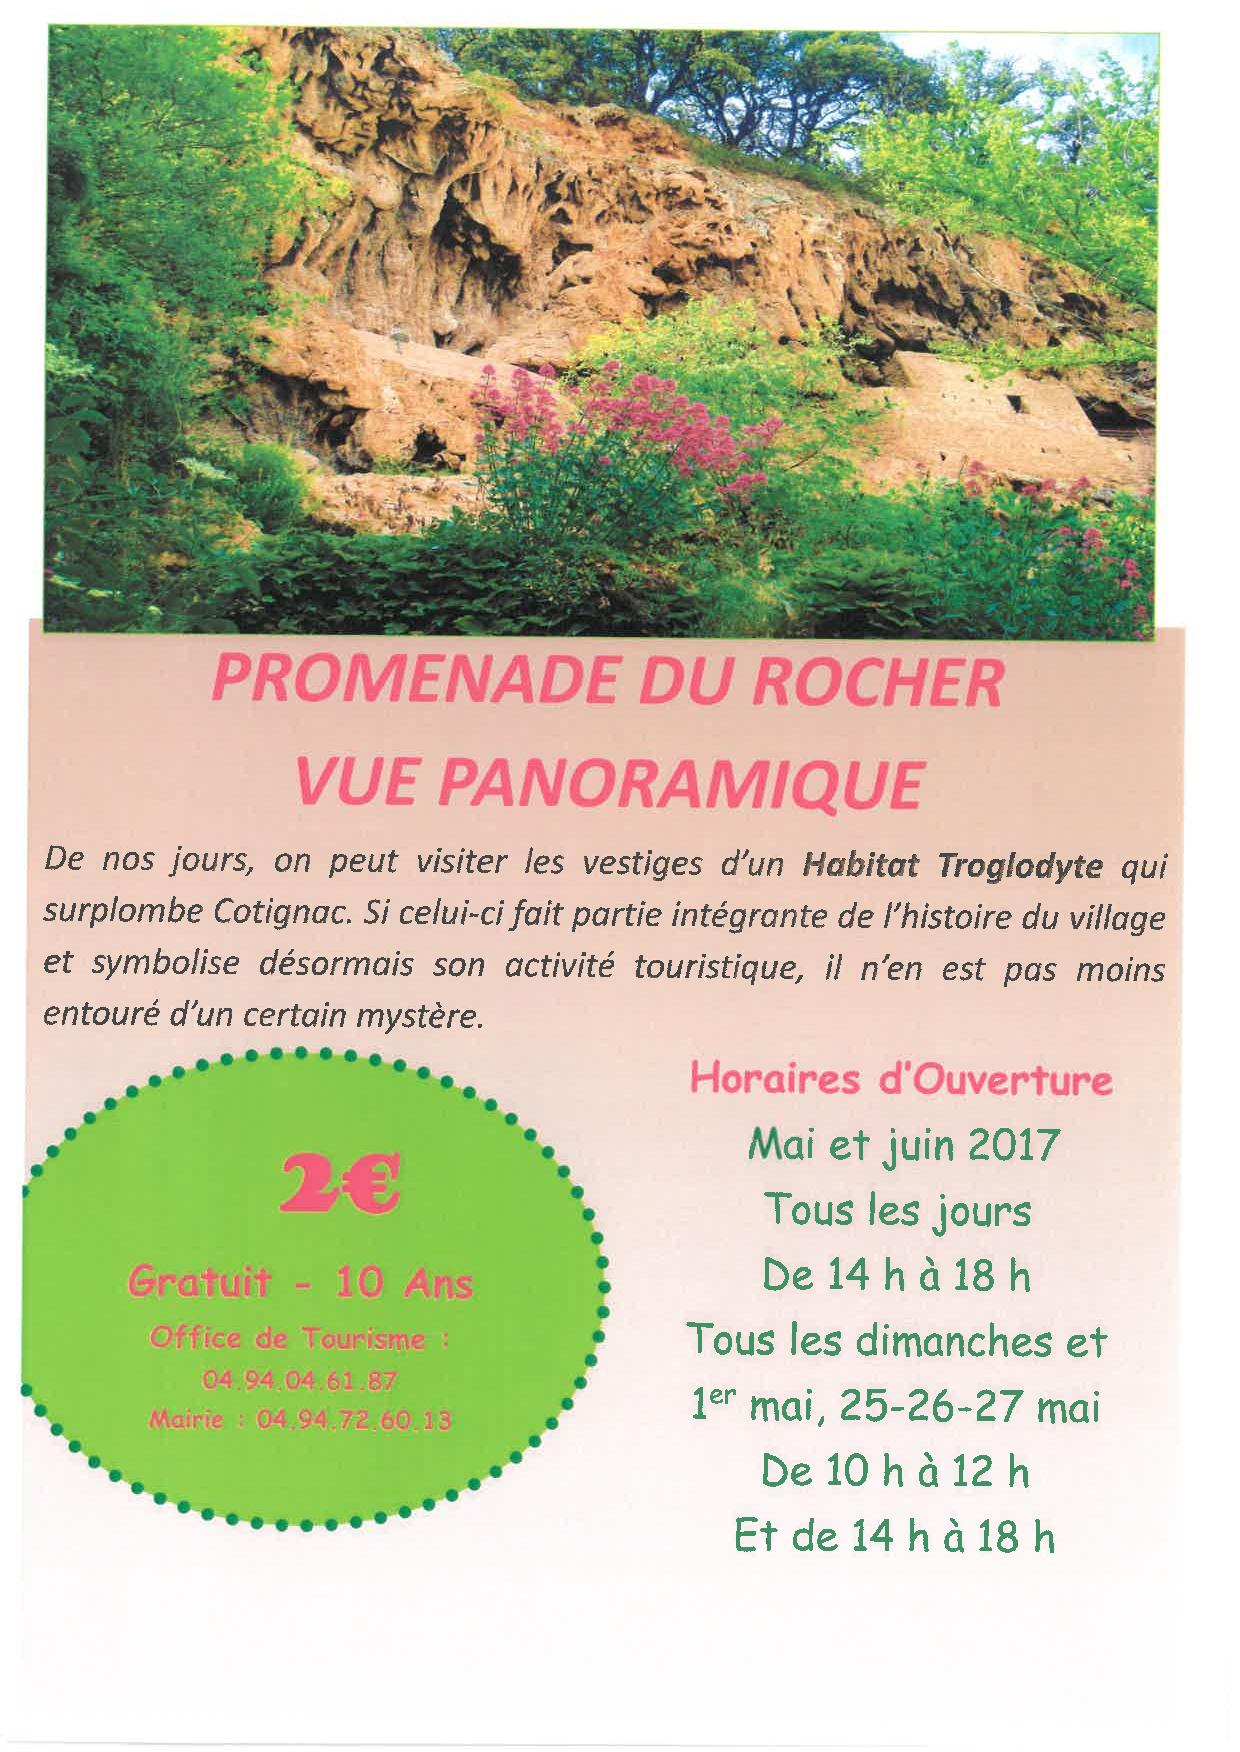 Rocher-page-001